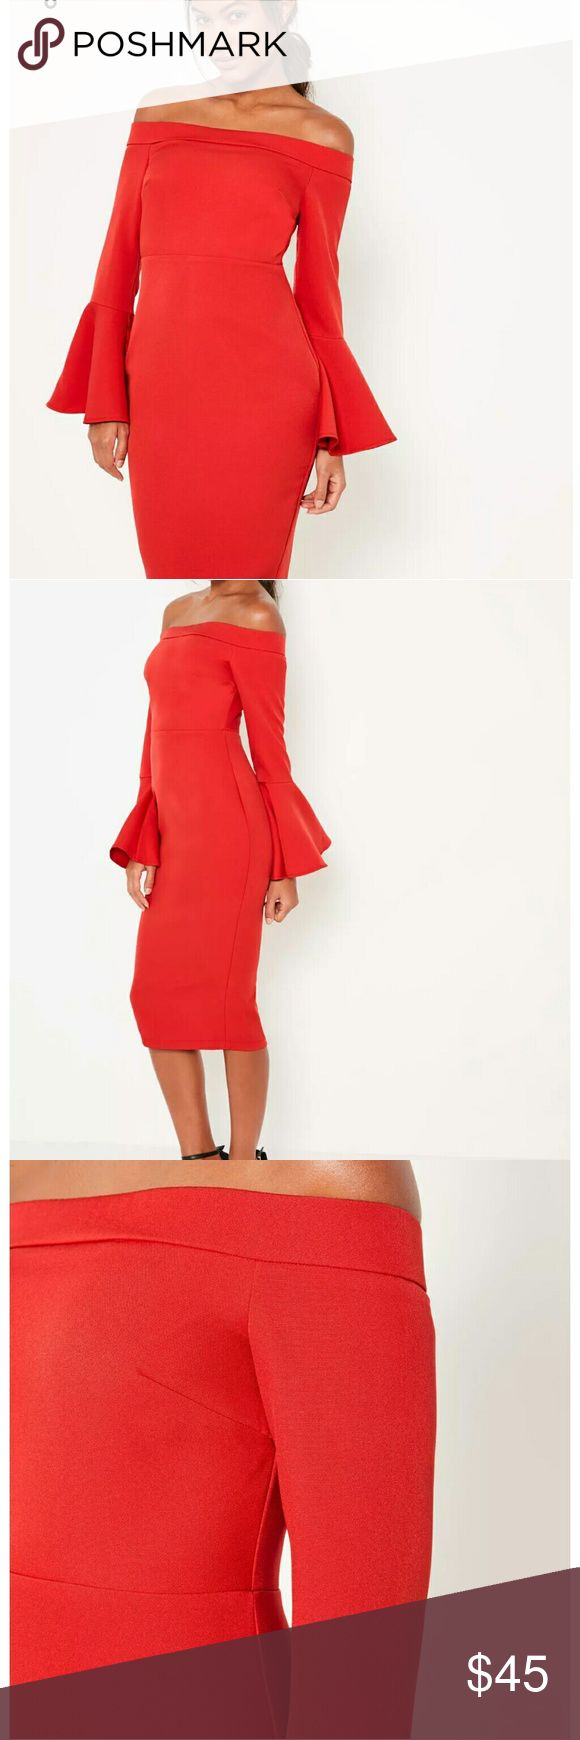 red bardot mid dress it's tailored sleeves will give you all the attention. love this dress is have in all sizes price negotiable Lei's FASHION BOUTIQUE Dresses Midi